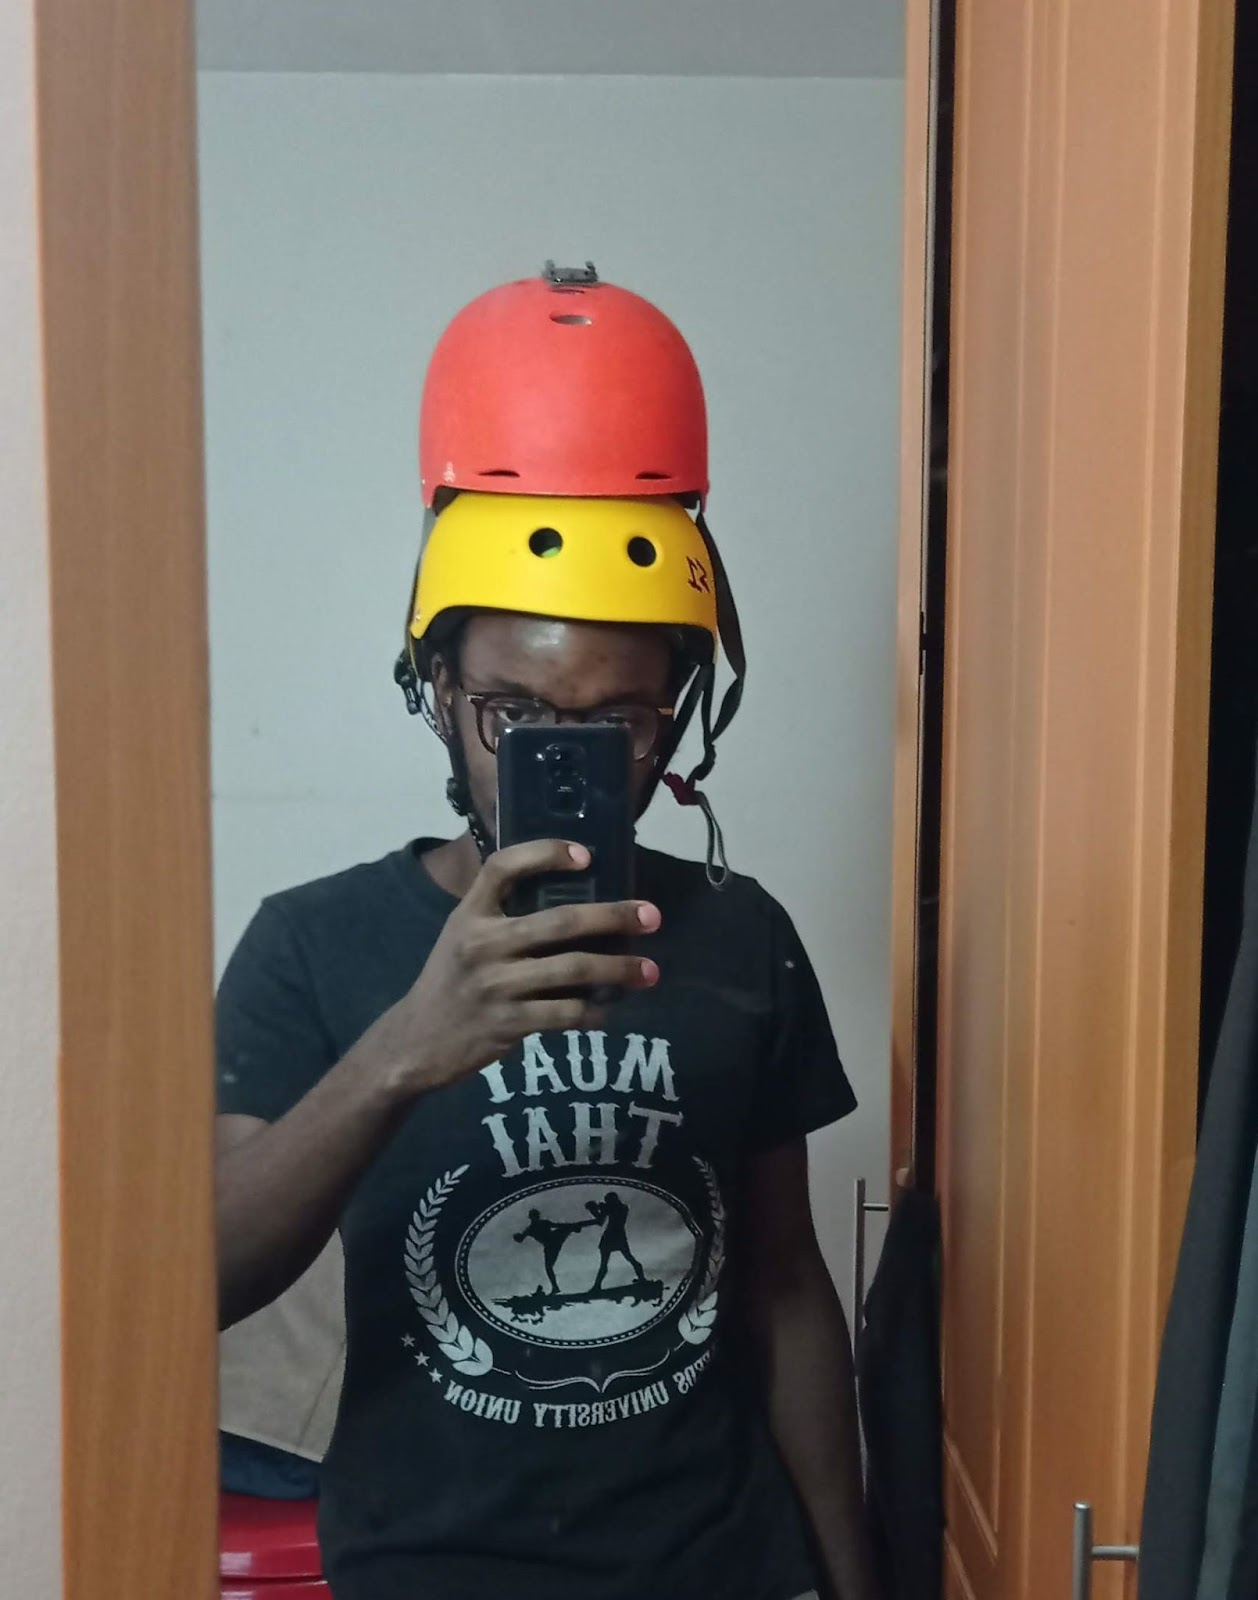 riding wearing two helmets for safety